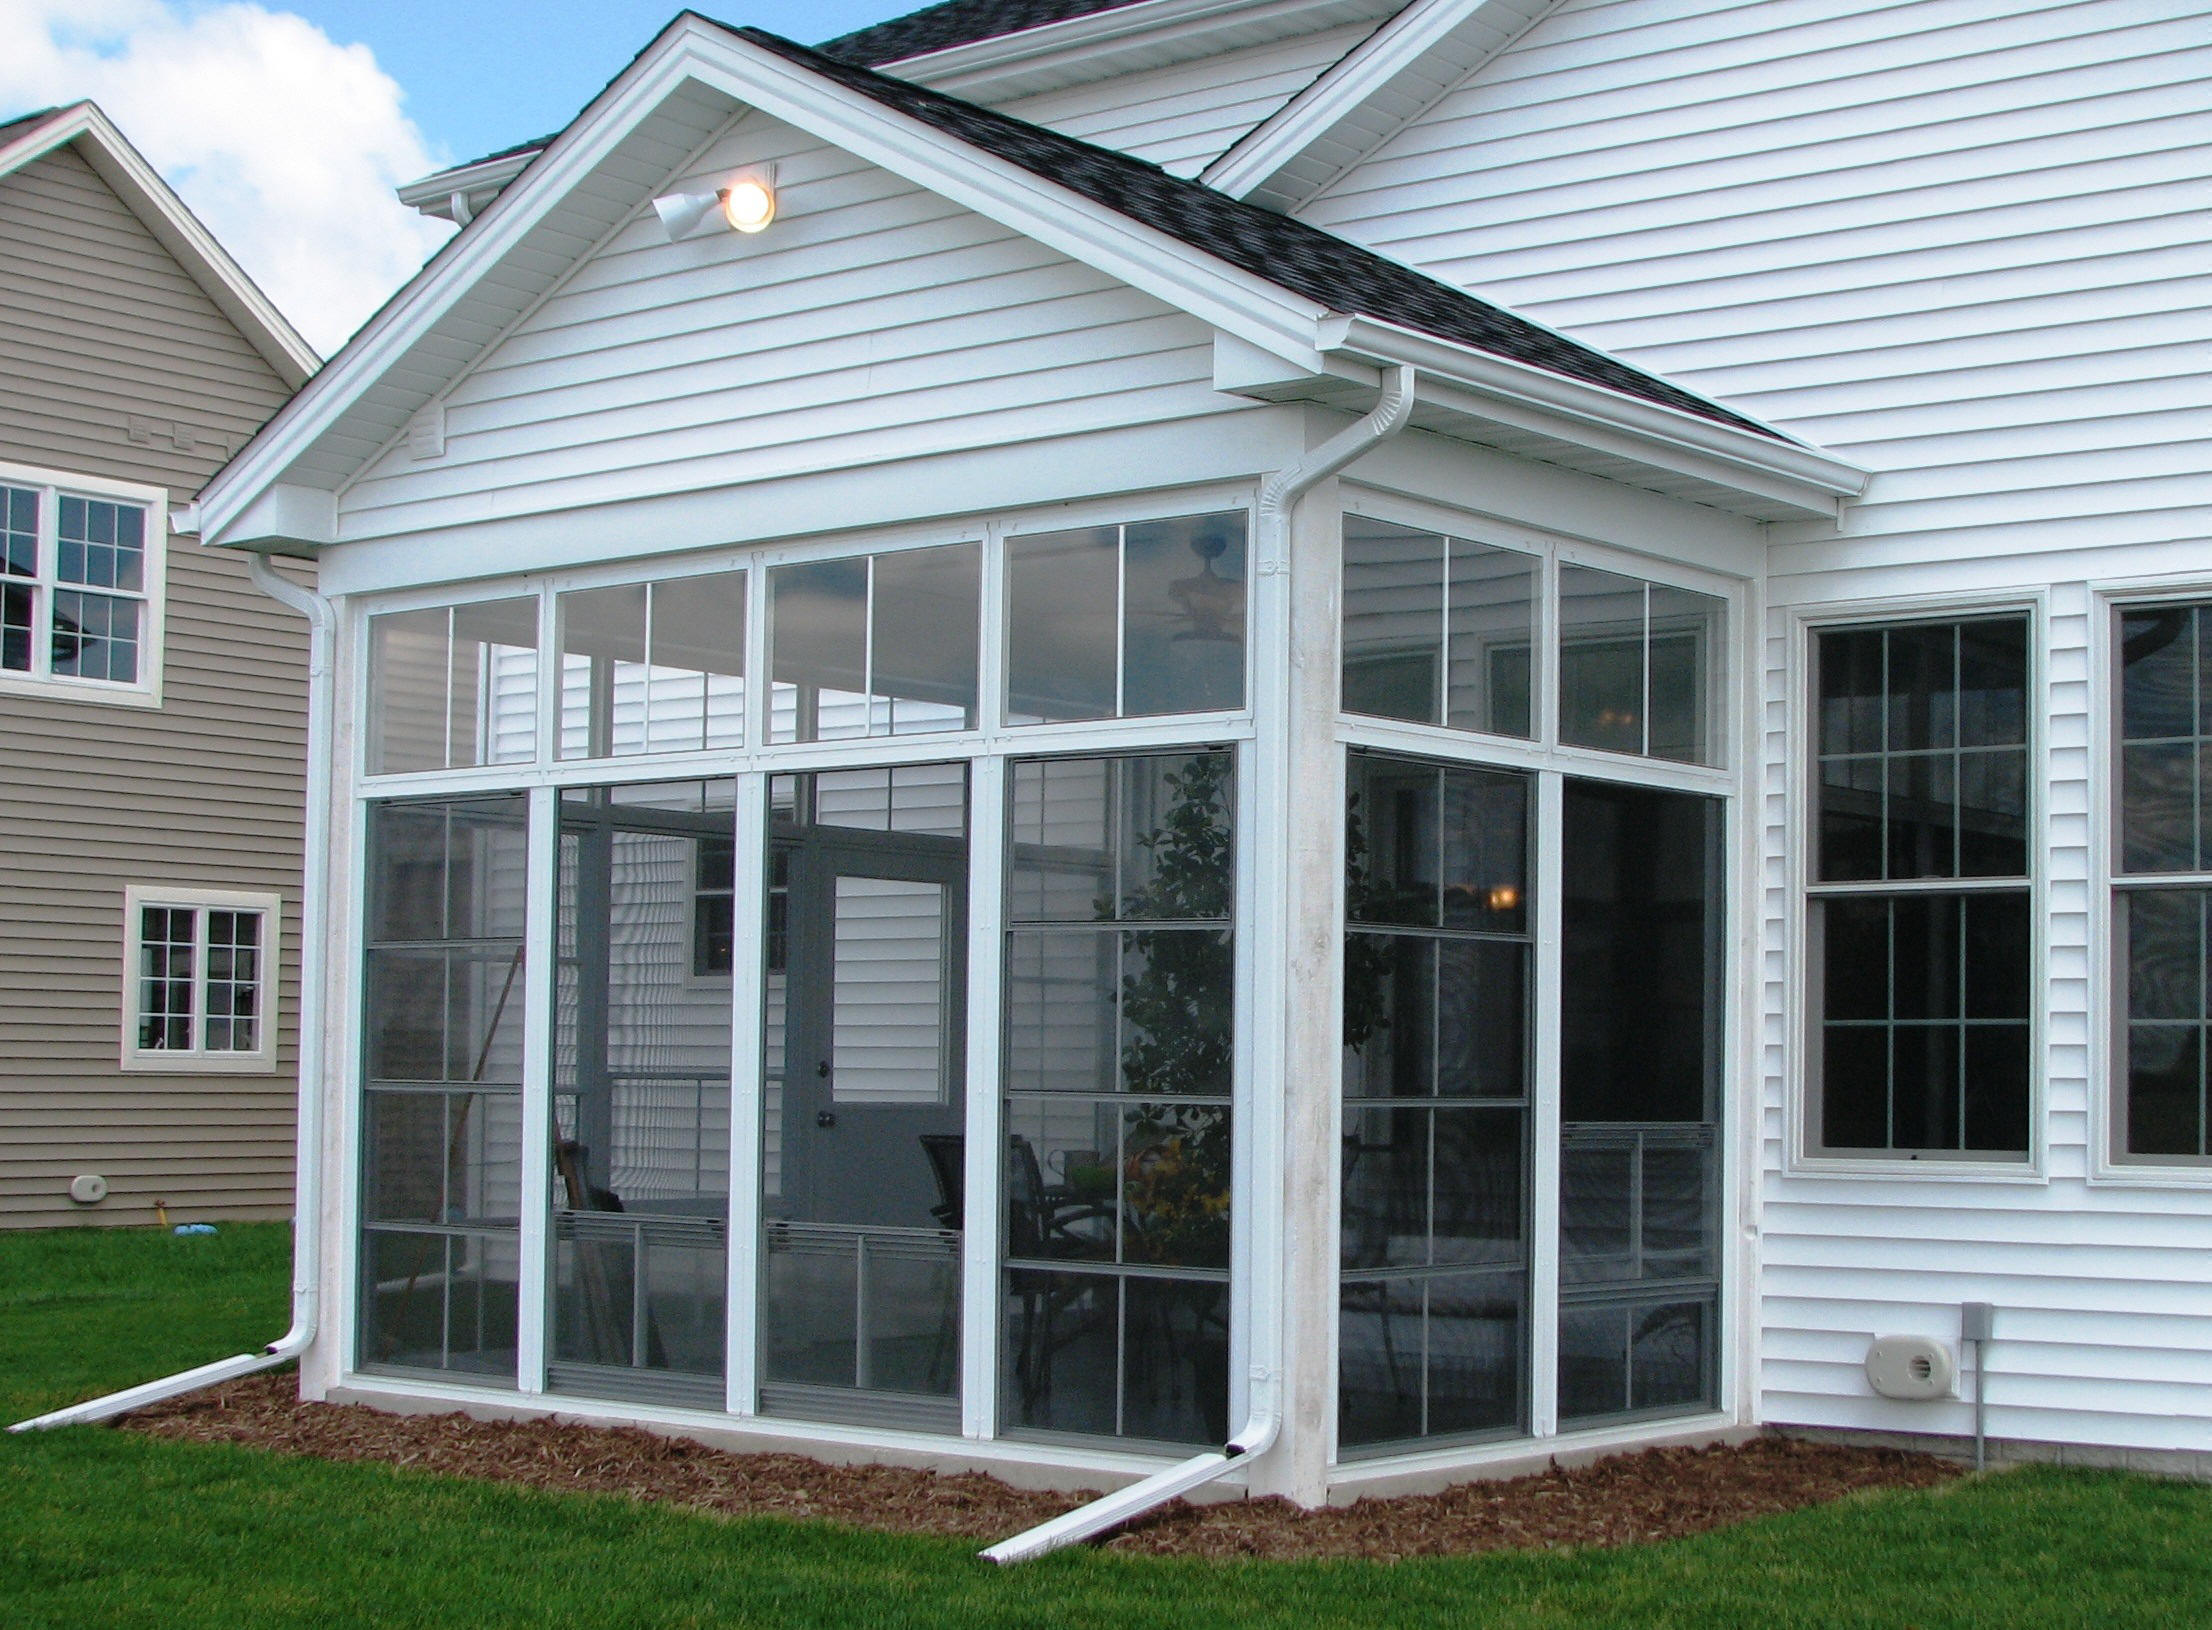 Sliding Screen Door Porch screen porch kits, custom windows and gazebo parts & kits